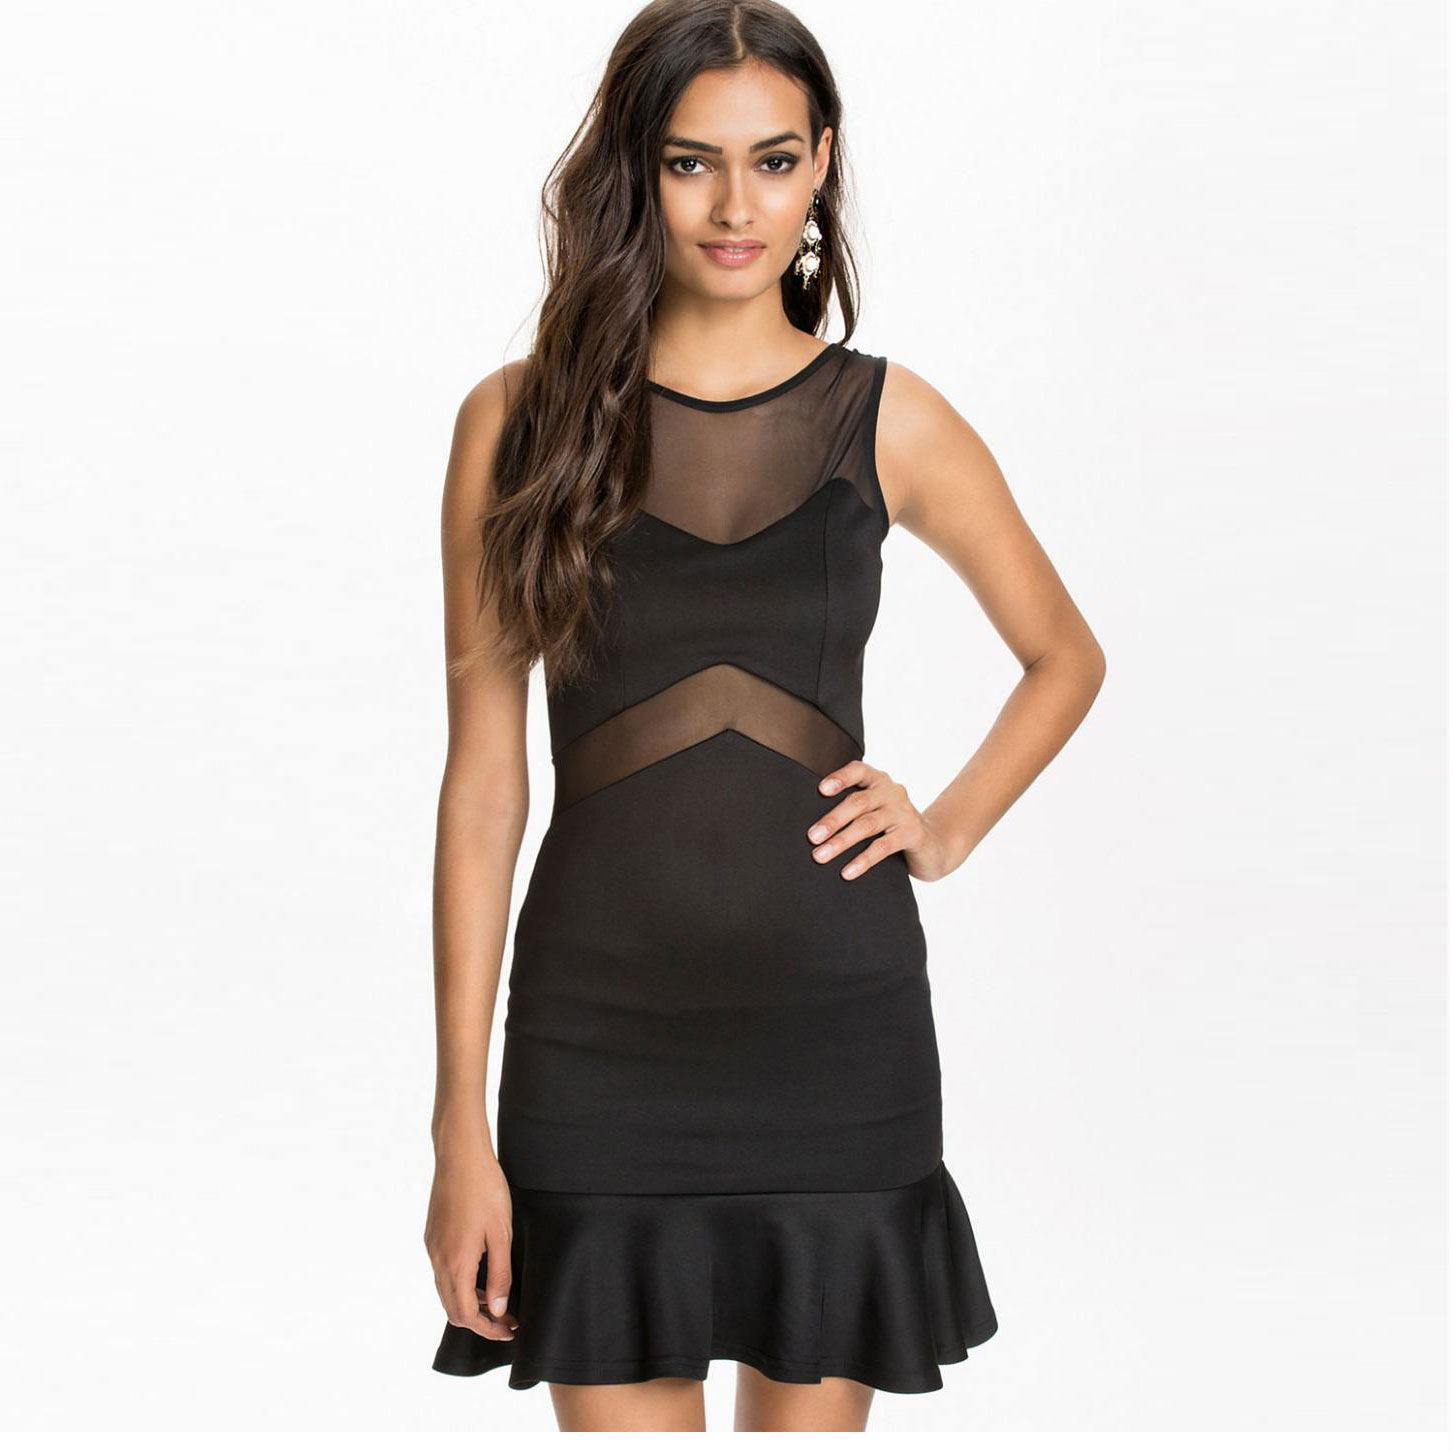 ba5cf859e472 Get Quotations · Summer Womens Clothing Sexy Dresses Party Night Club Black  Lace Skater Dress With Mesh Casual Vestido